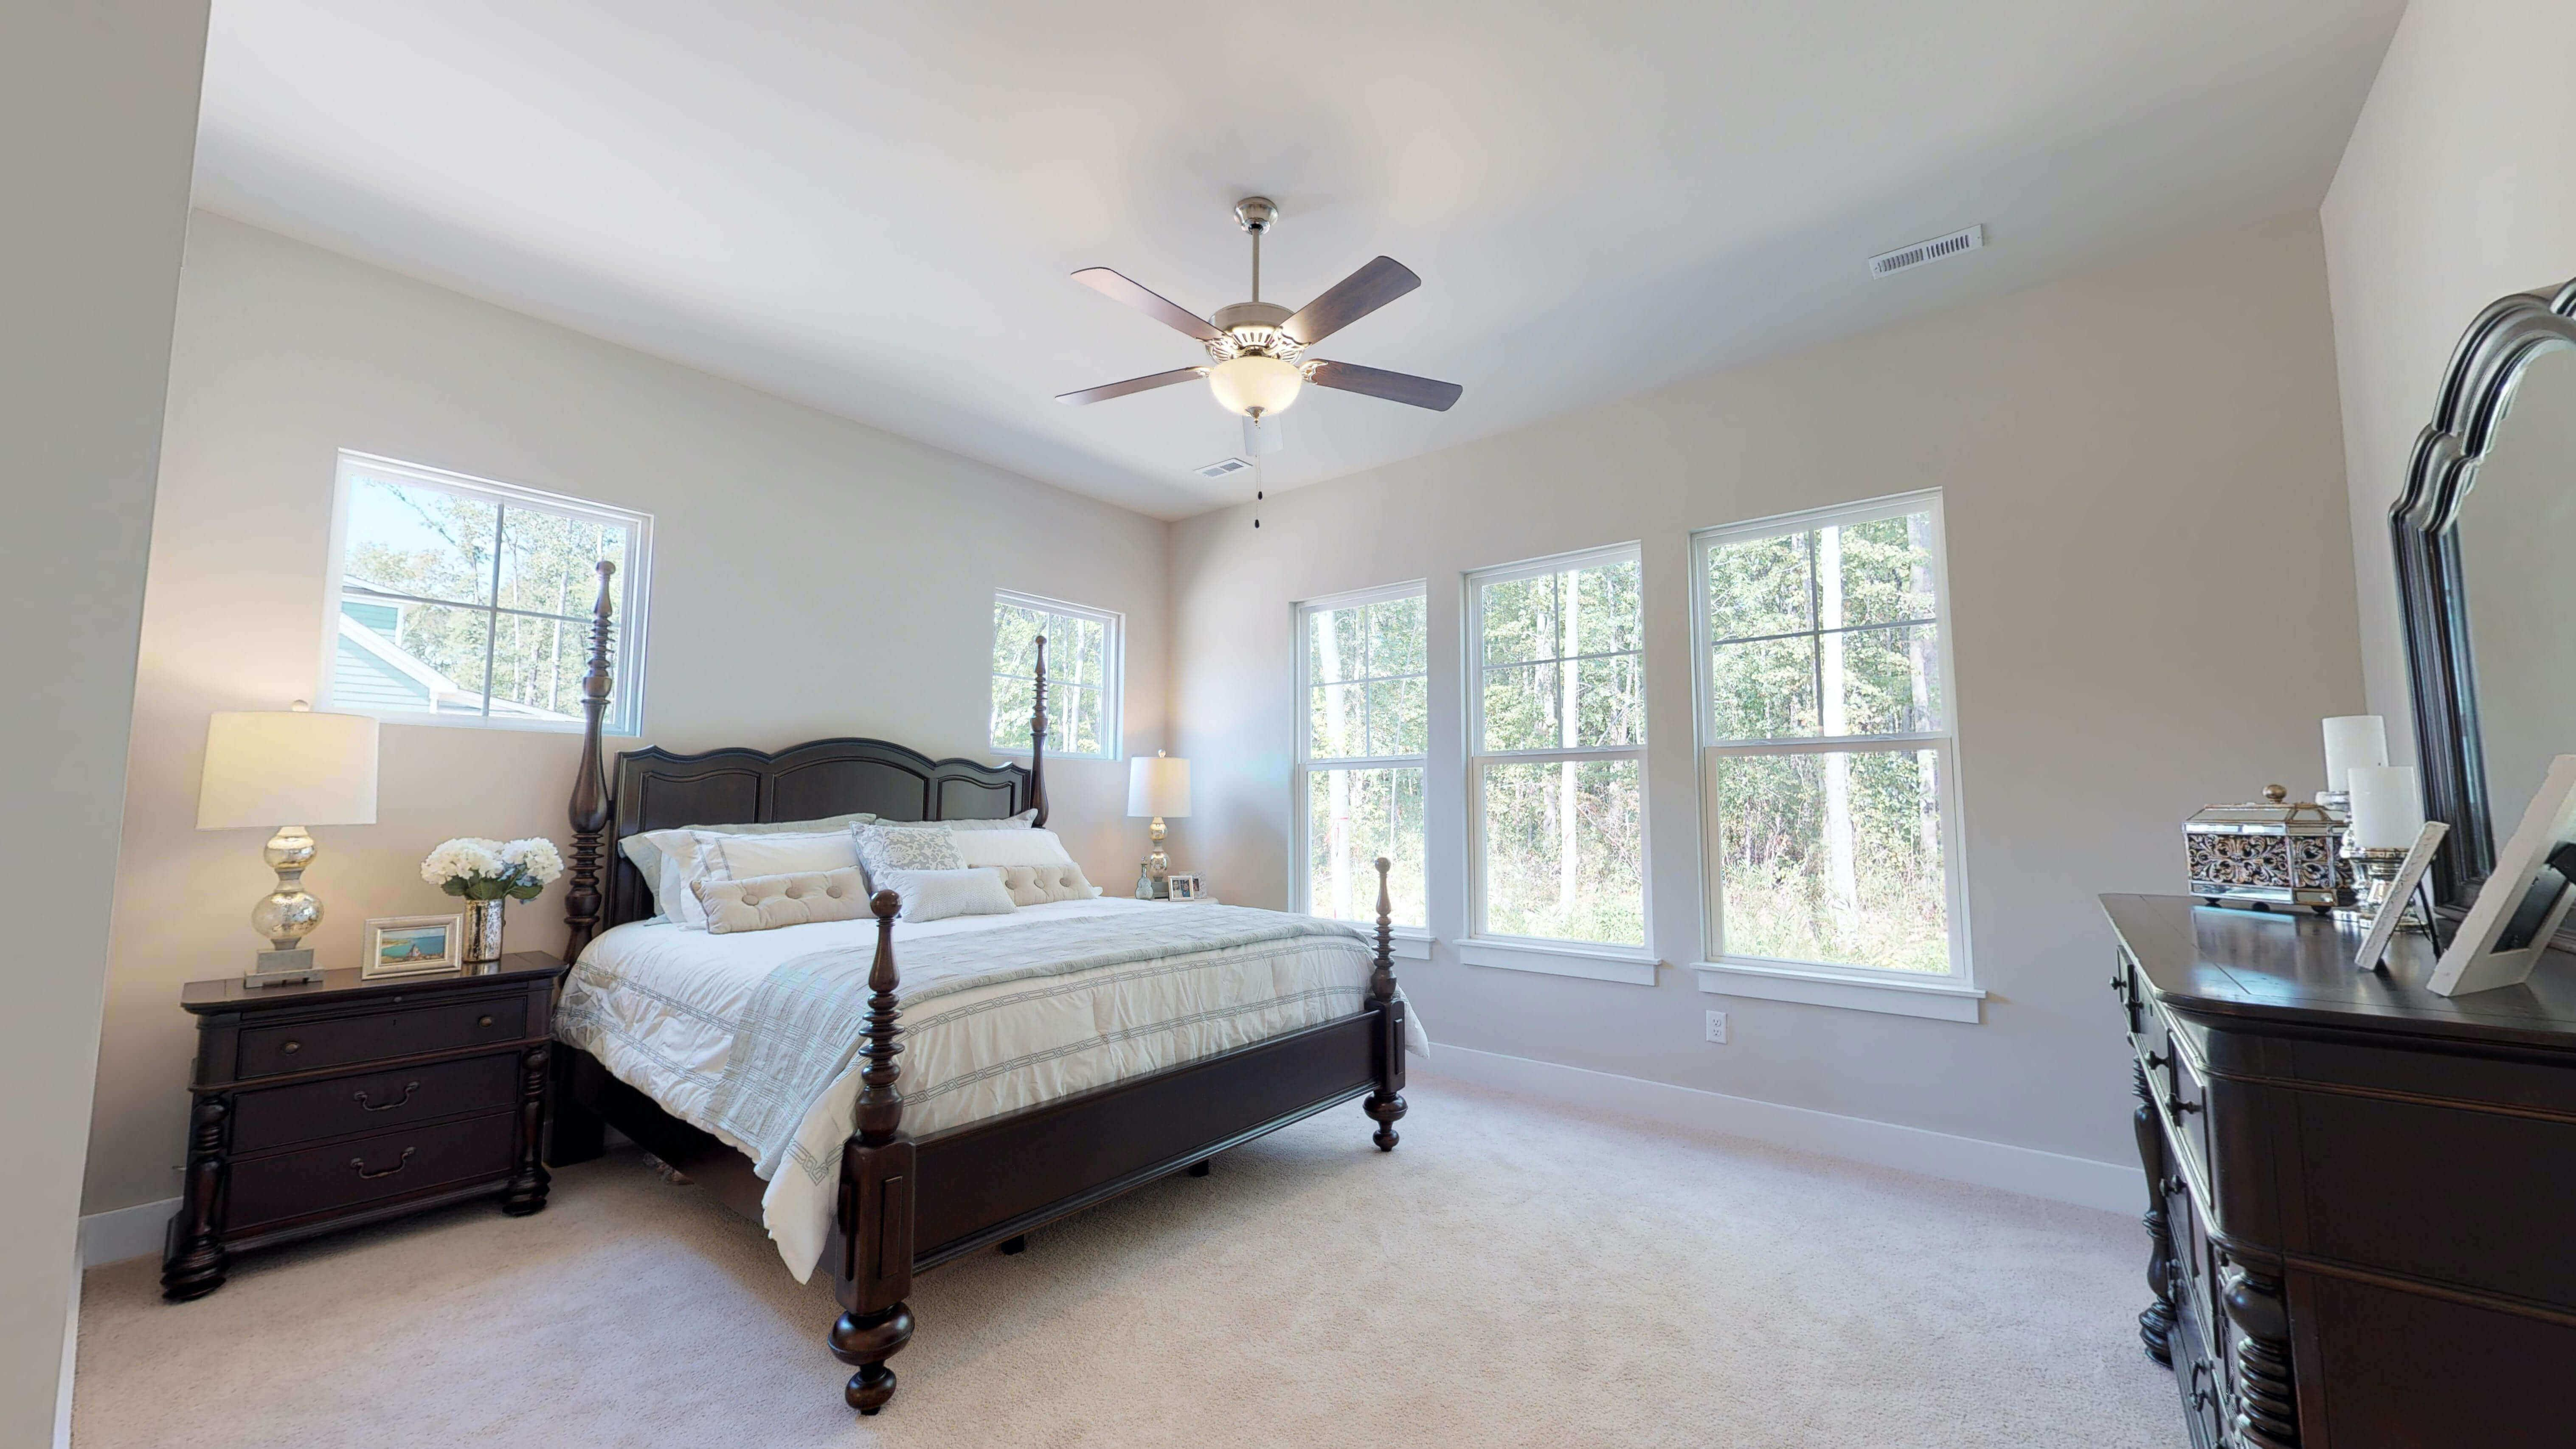 Bedroom featured in the Cape Charles By Stephen Alexander Homes in Outer Banks, NC